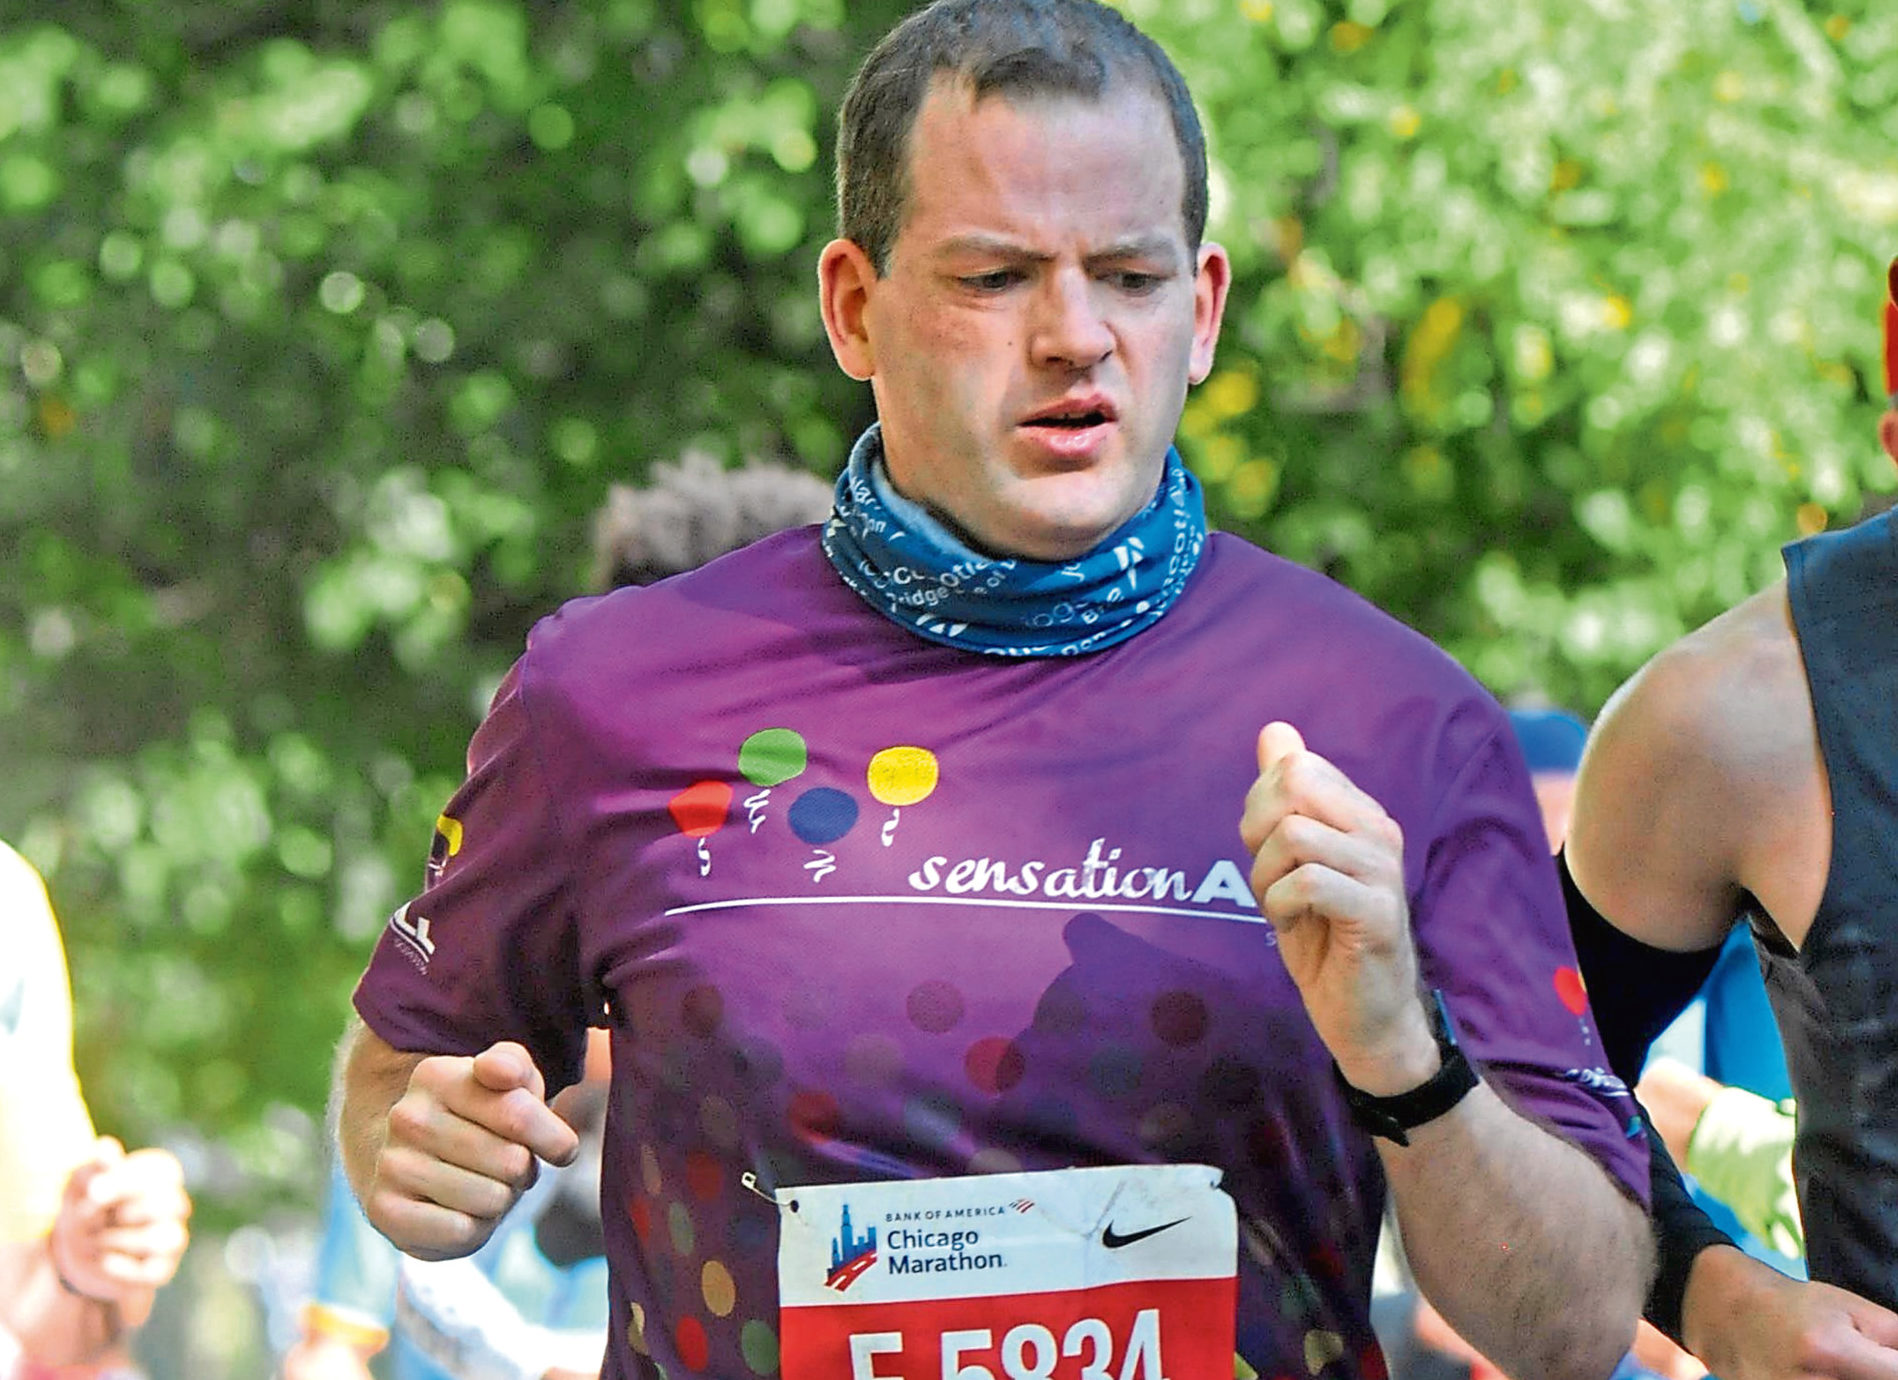 Aberdeen Donside MSP Mark McDonald competing in the Chicago Marathon to raise money for SensationALL